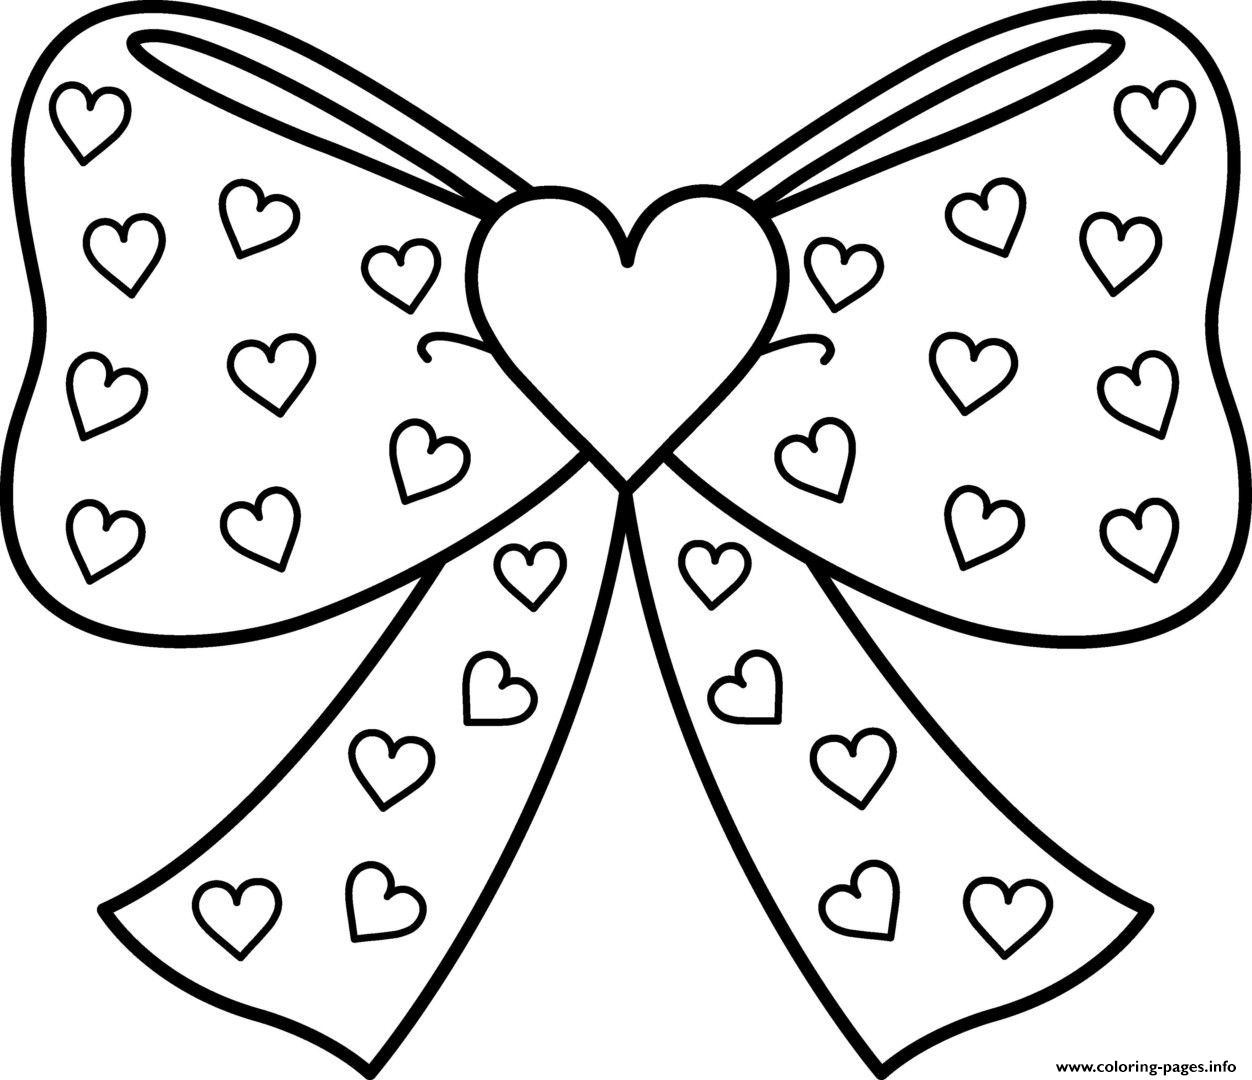 Jojo Siwa Printable Coloring Pages  promise Jojo Siwa Coloring Pages Cute Free